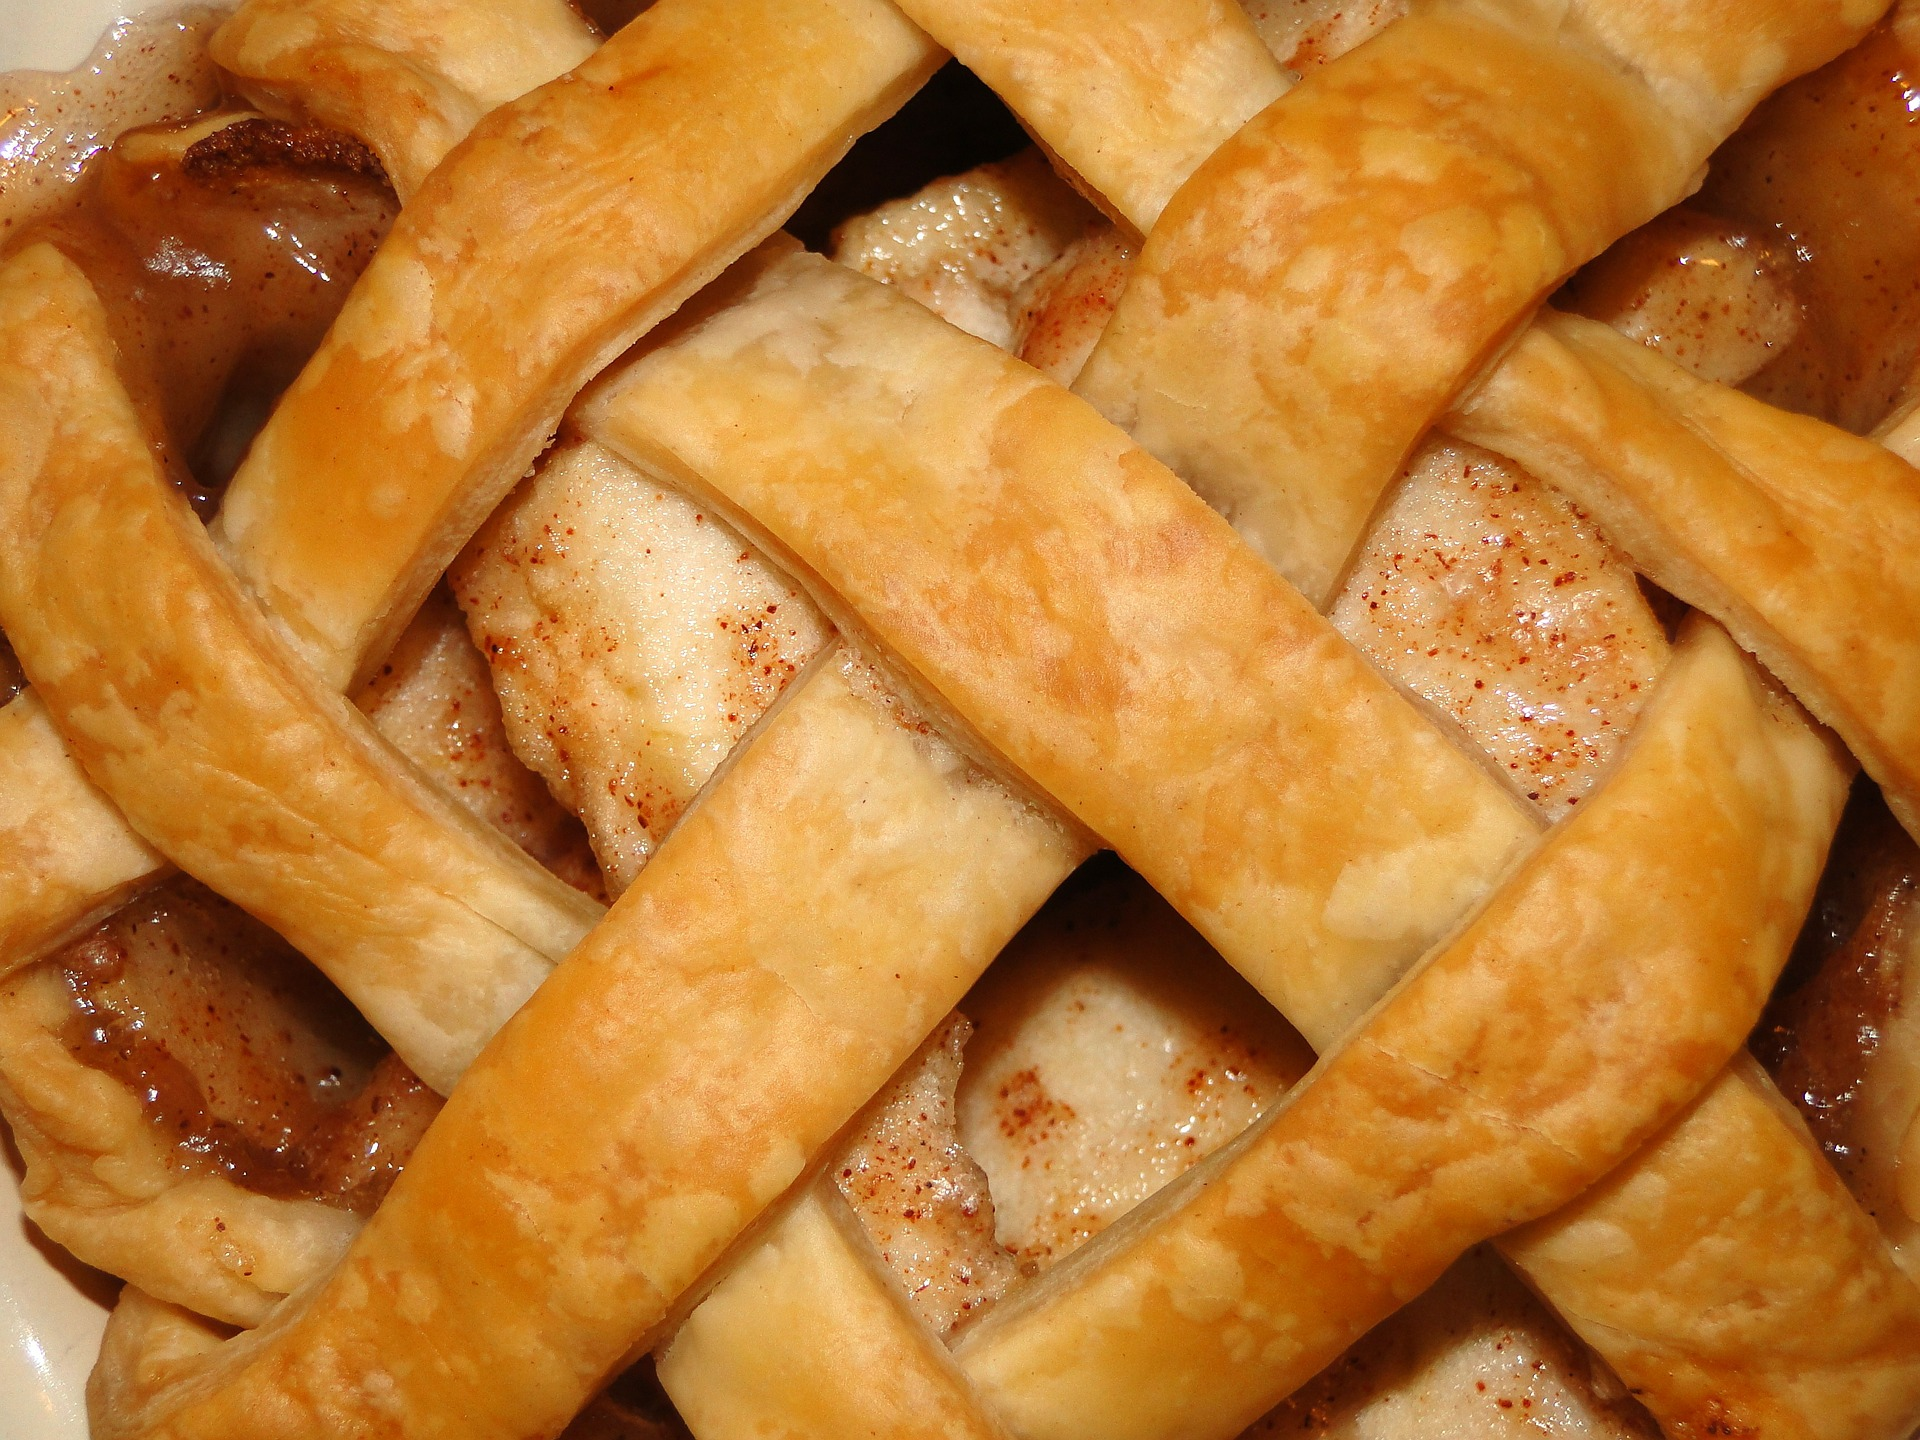 Brits Vote Apple Pie As Their All-Time Favourite